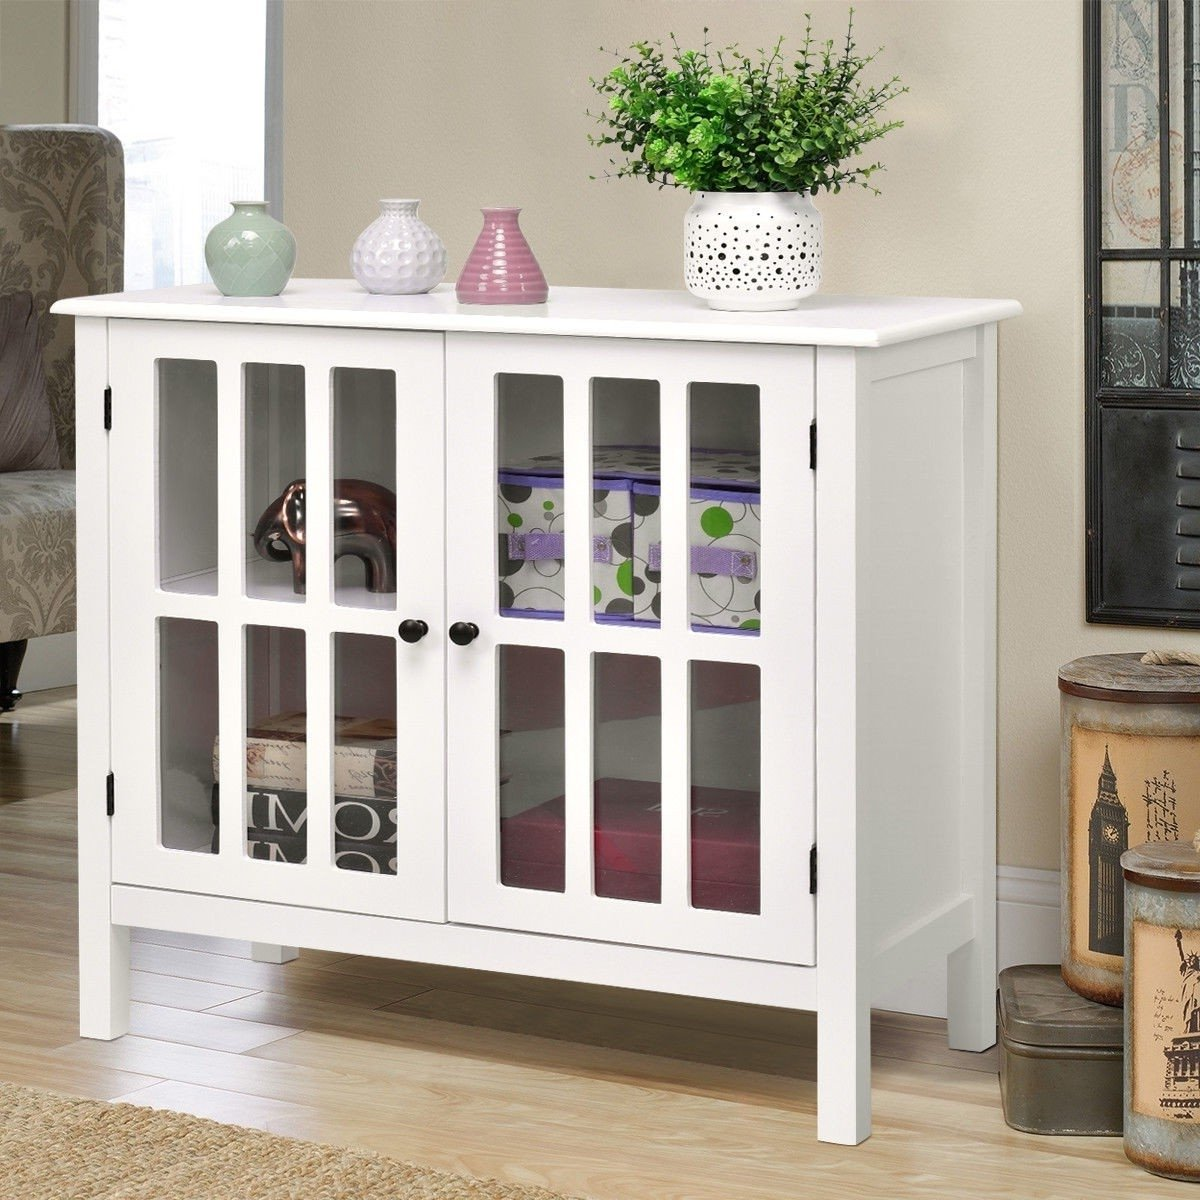 White Wood Sideboard Buffet Cabinet with Glass Panel Doors